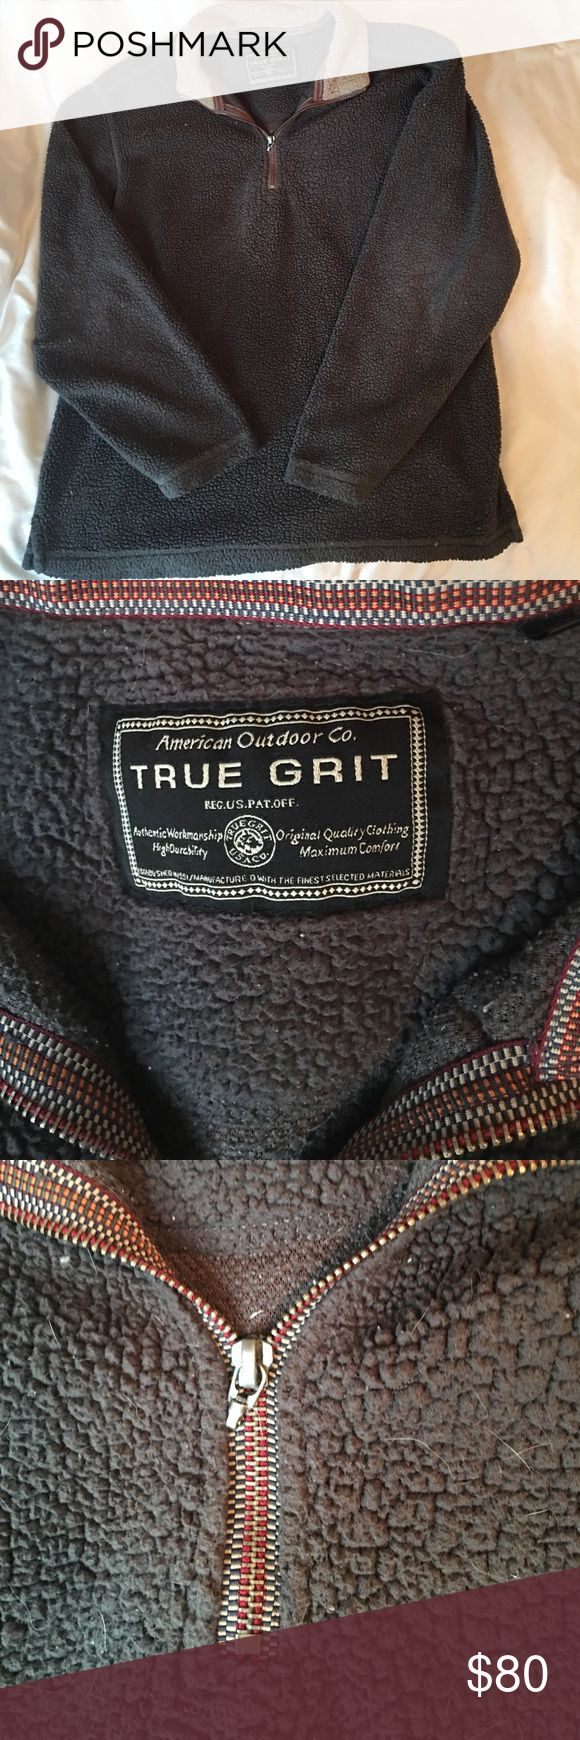 Selling this authentic true grit jacket! on Poshmark! My username is: anntayyy. #shopmycloset #poshmark #fashion #shopping #style #forsale #true grit #Jackets & Blazers